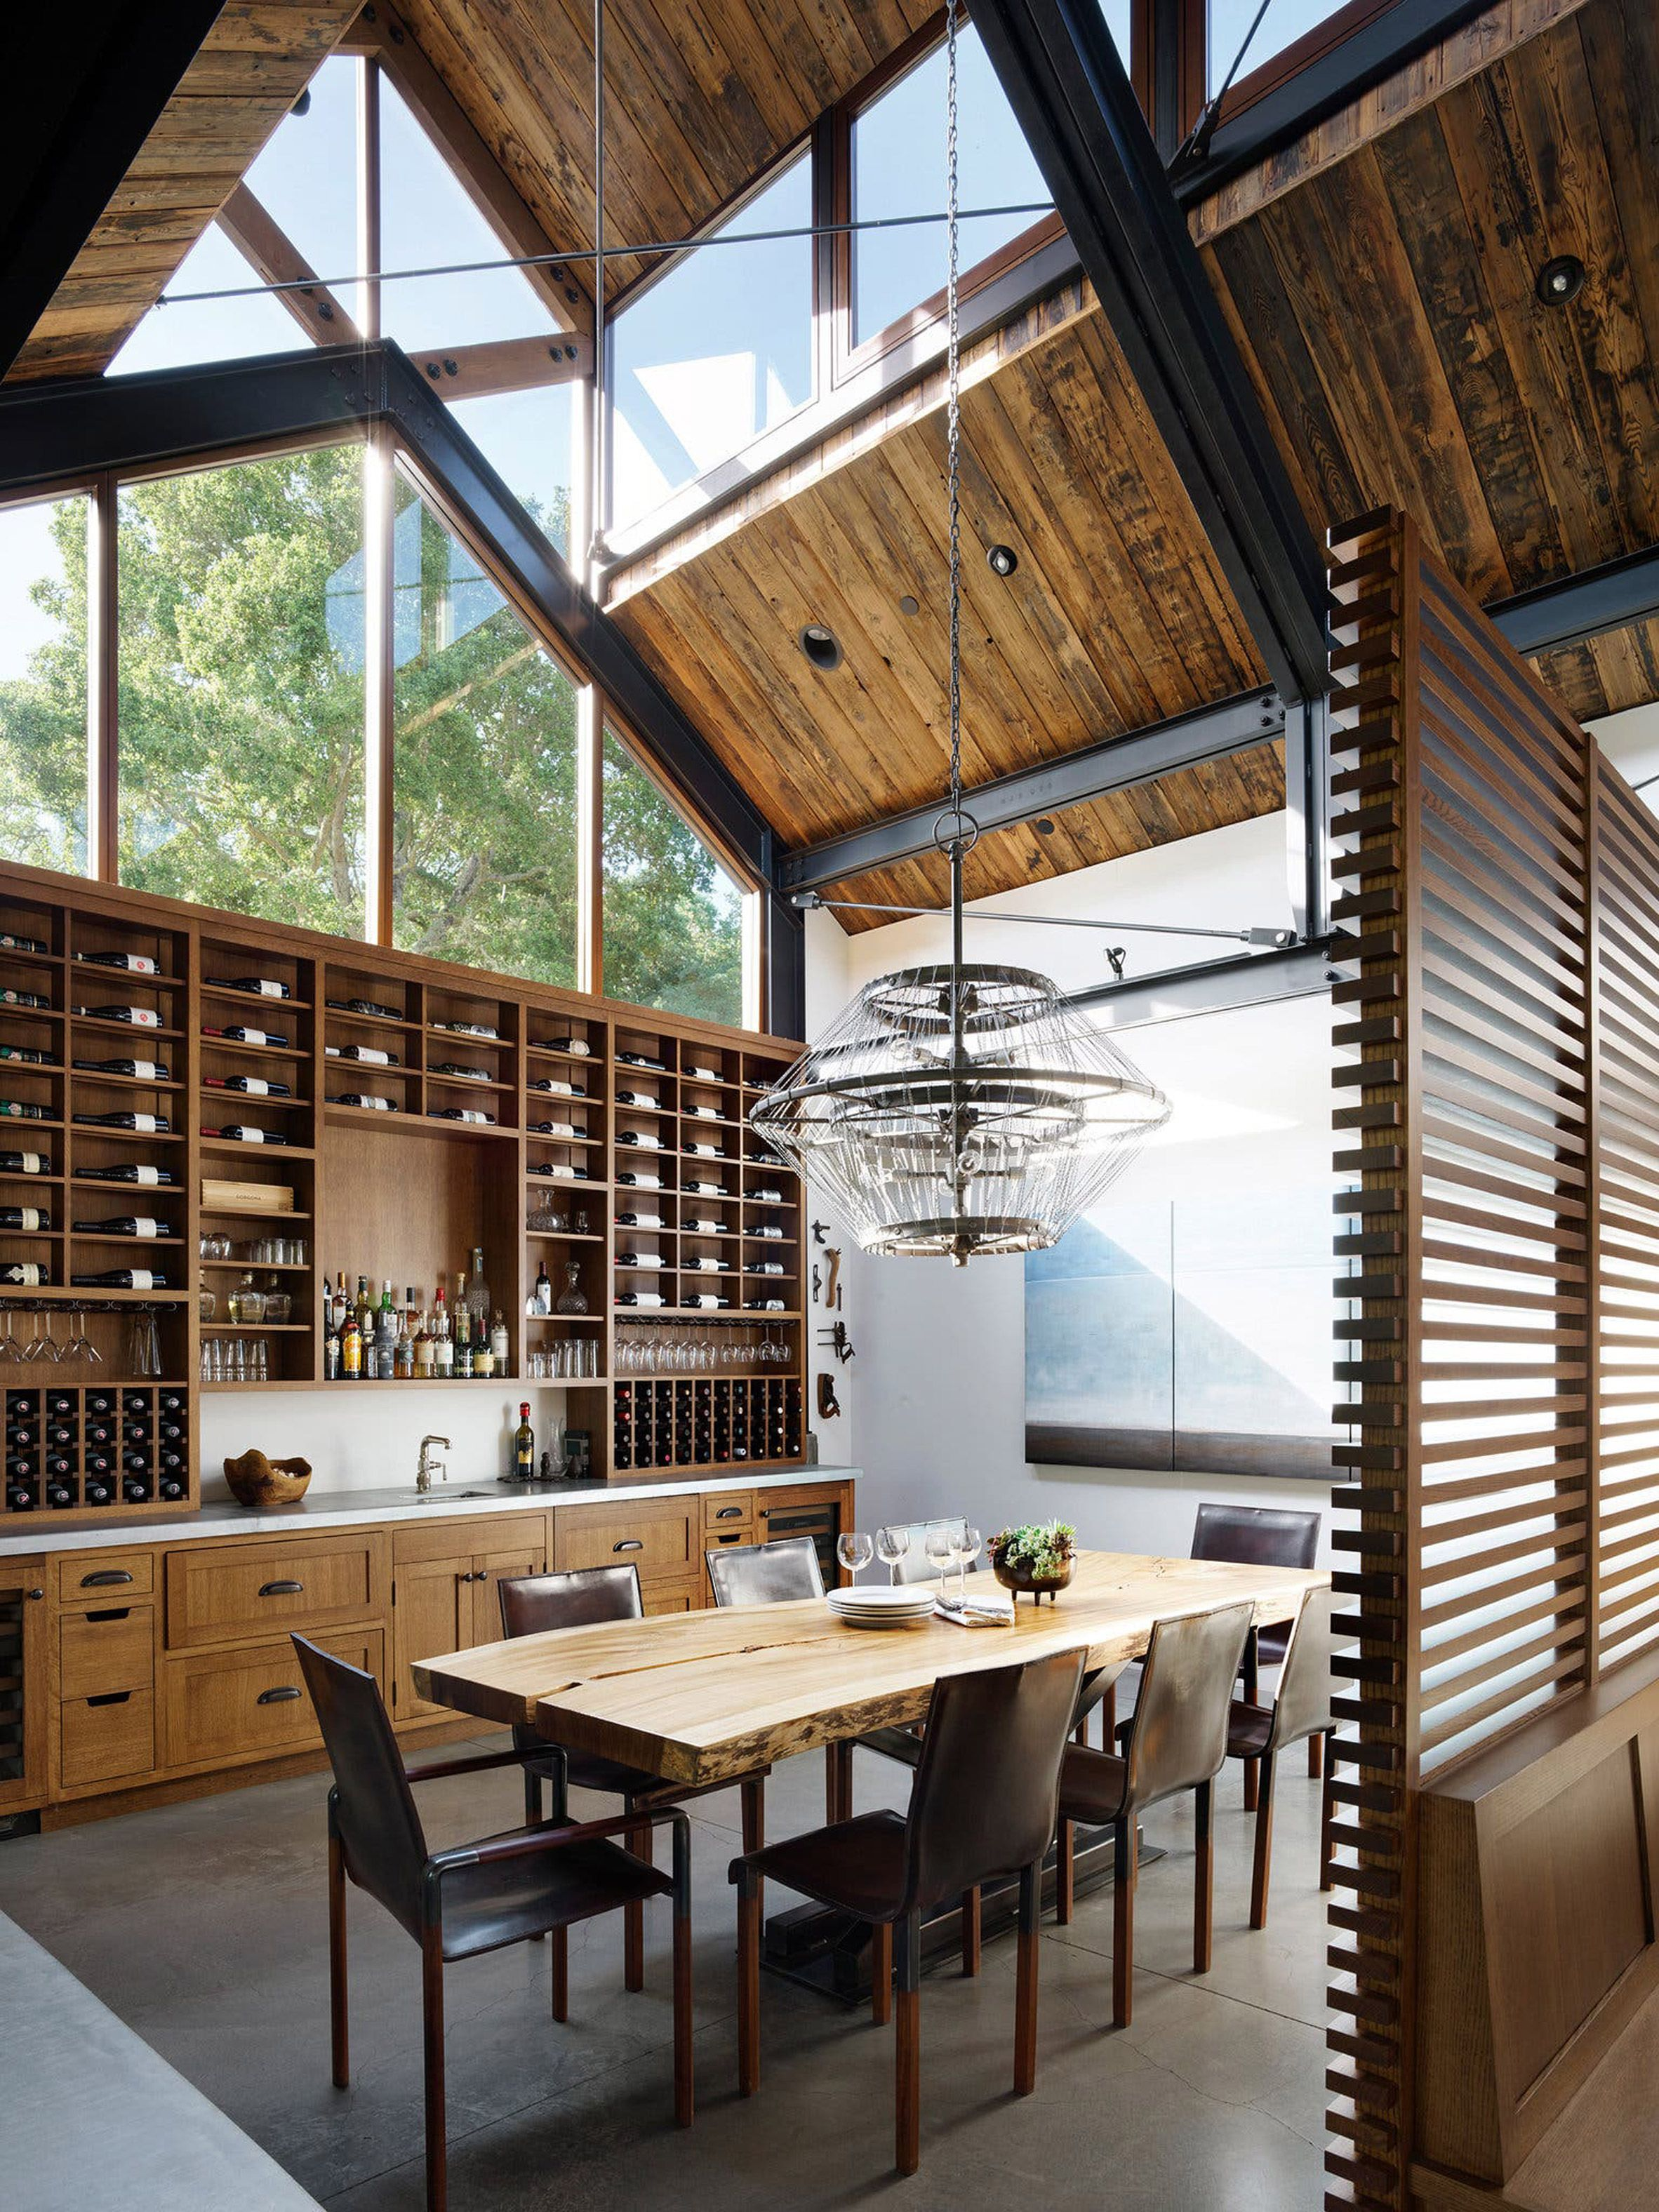 Dining Space Behind A Partition And Under A High Vaulted Ceiling With Clerestory Windows Portola Valley San Mateo County Ca In 2020 Ranch House Clerestory Windows Home